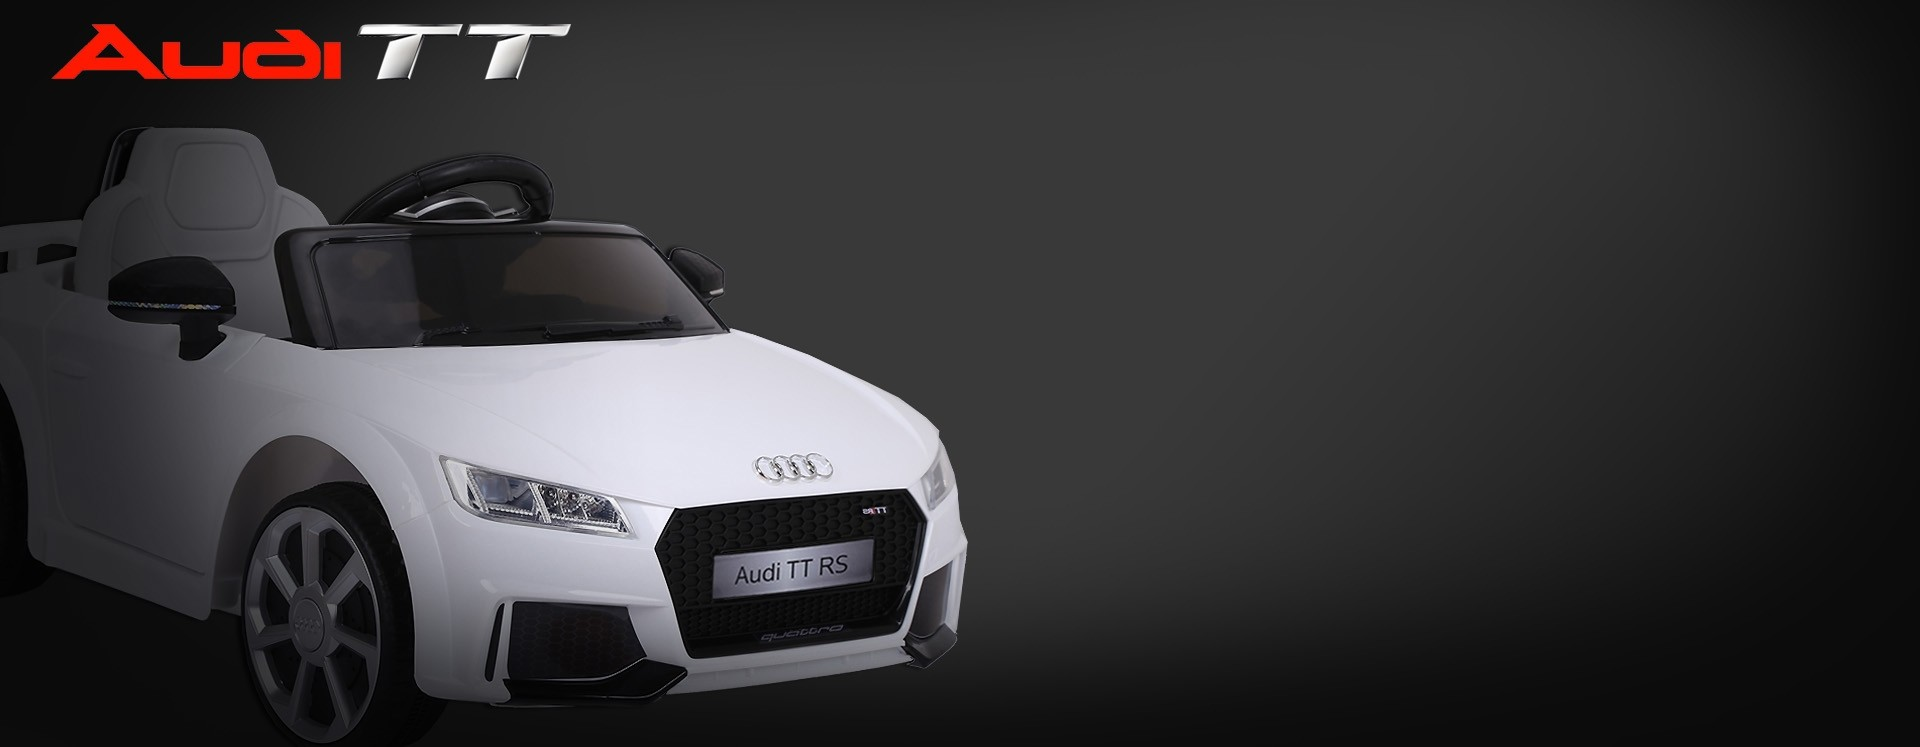 Xtreme 12v Official Licensed Audi TT RS Ride on Car in White